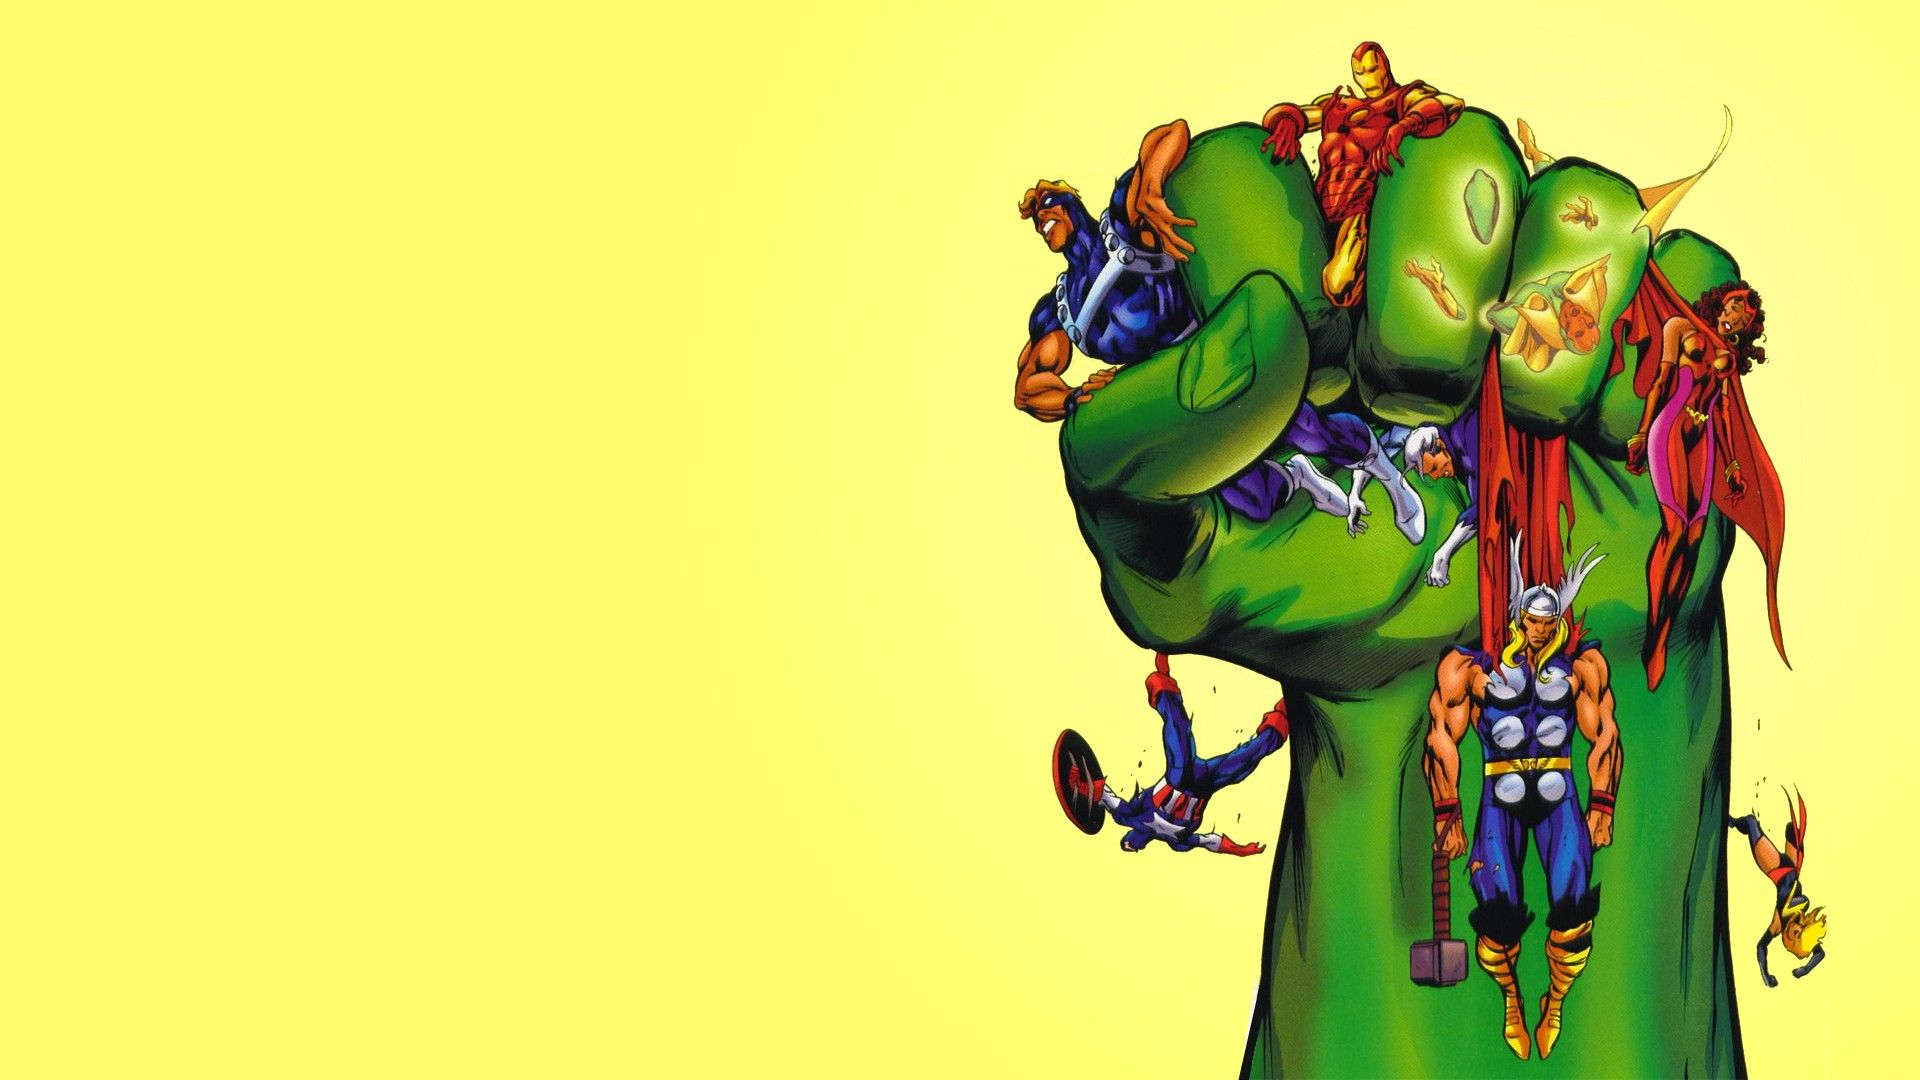 Funny Marvel Movies Wallpaper Picture 1620 Wallpaper Marvel Comics Hulk Marvel Comics Wallpaper Marvel Cartoons